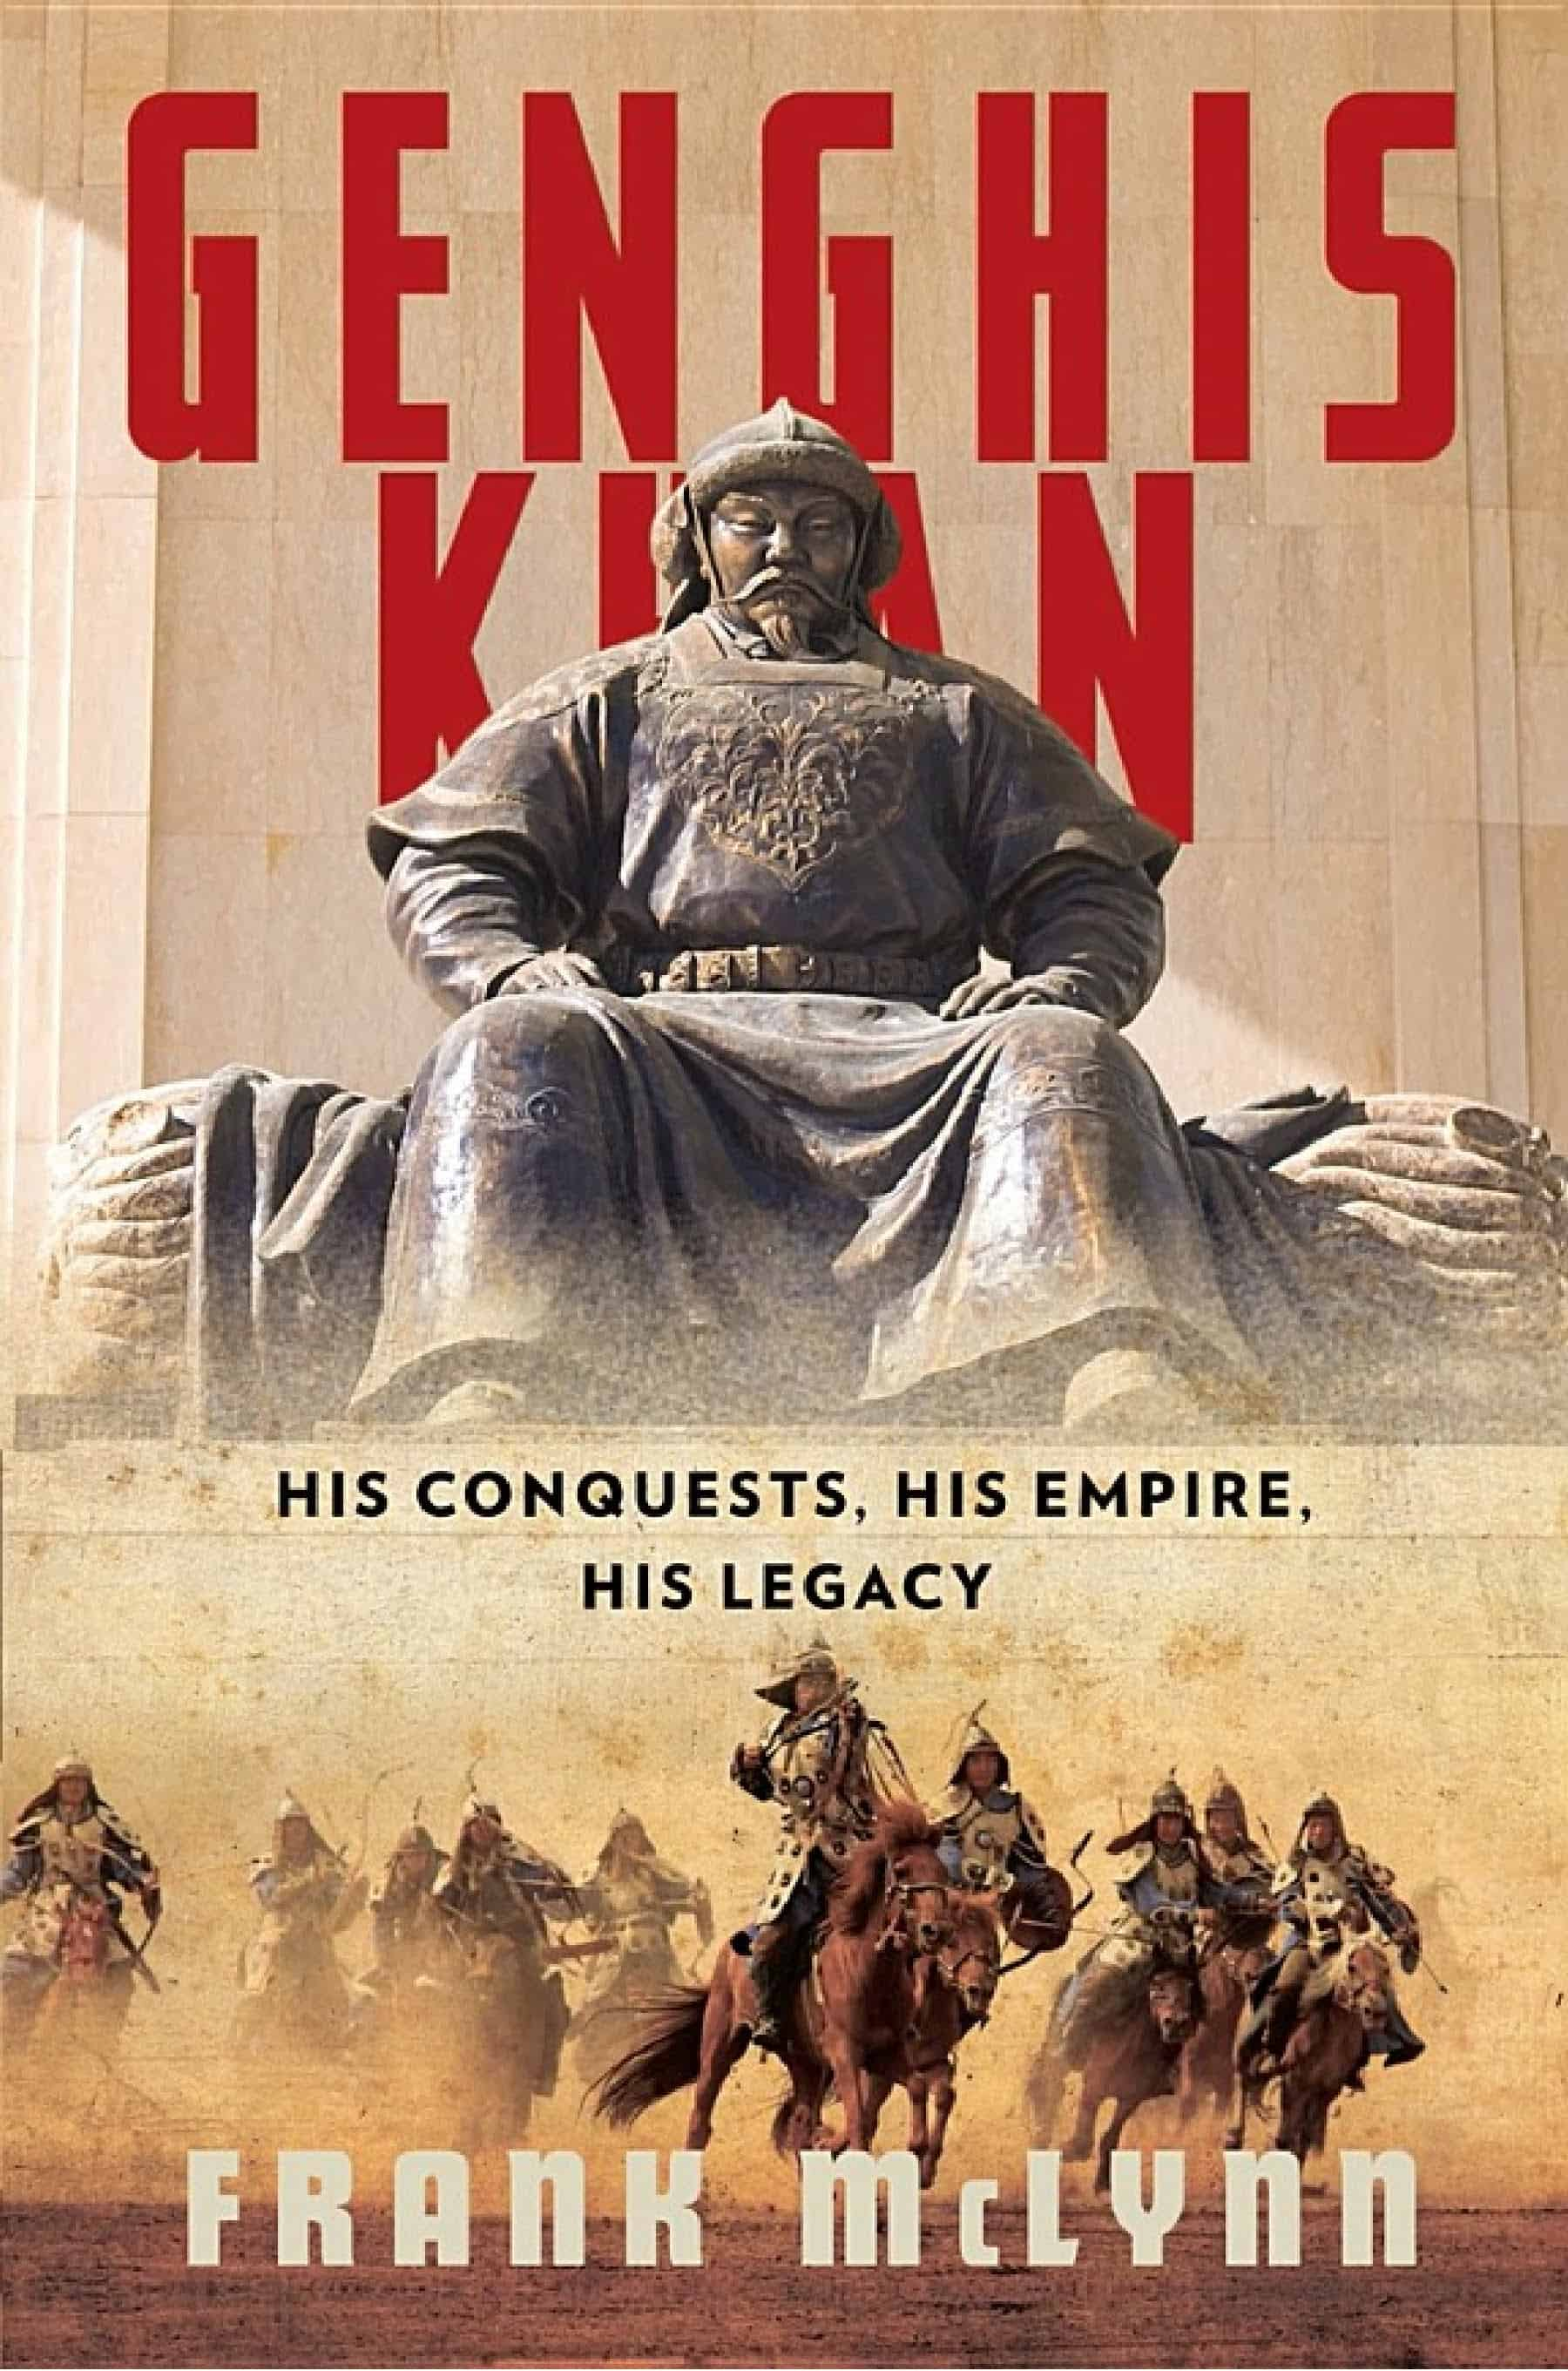 Genghis Kahn His Conquests His Empire His Legacy 1 - Genghis Kahn: His Conquests, His Empire, His Legacy